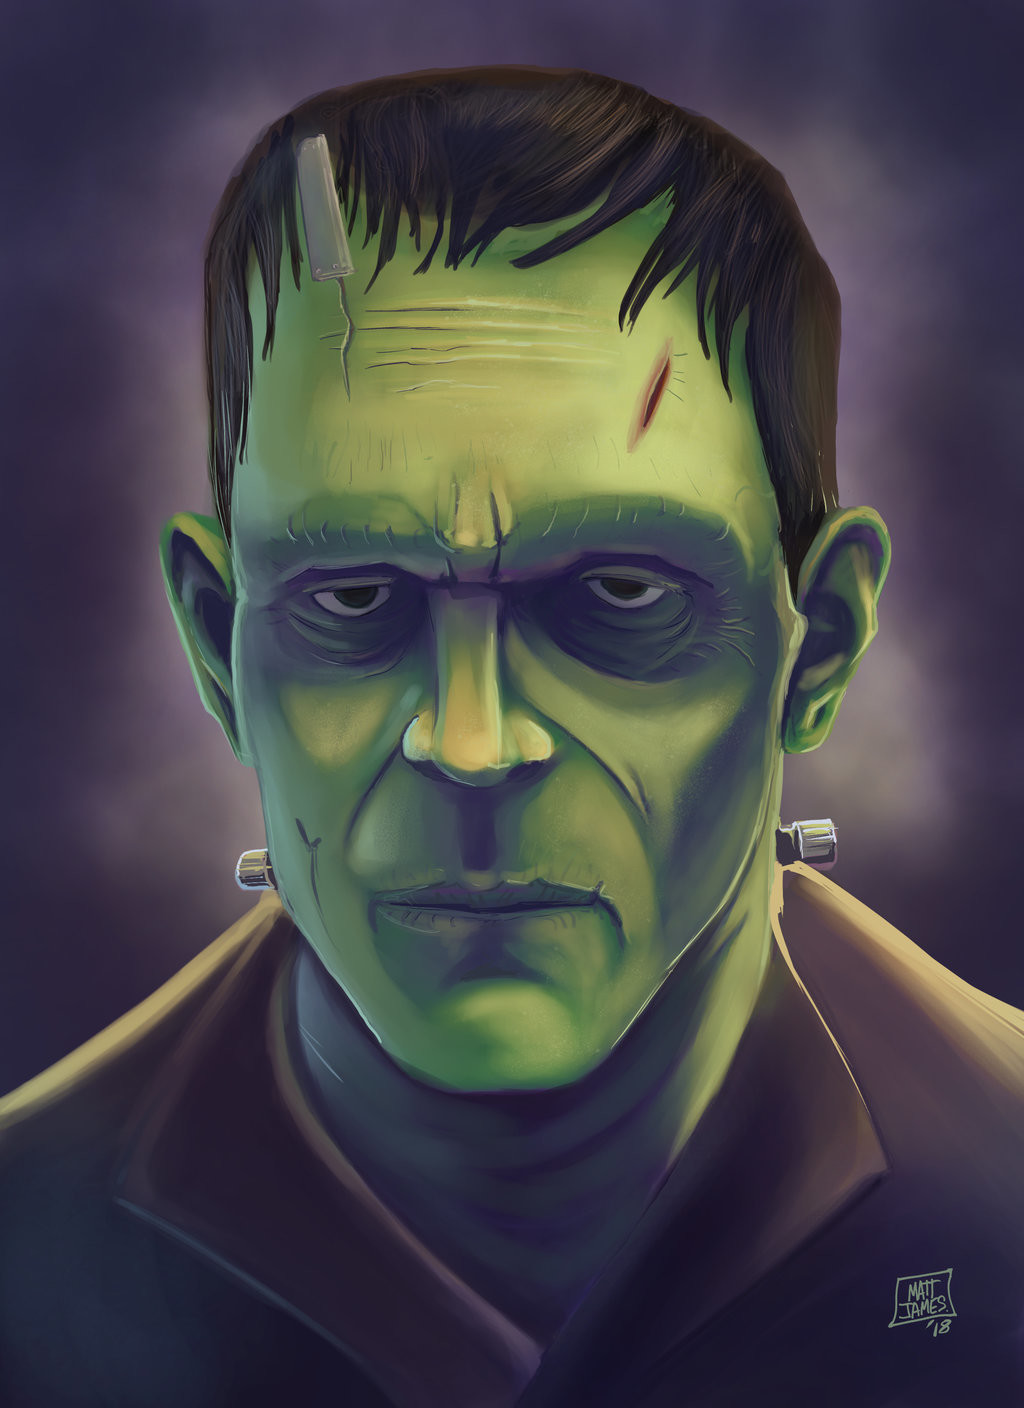 Matt james frankenstein s monster by snakebitartstudio dbyn27f 1